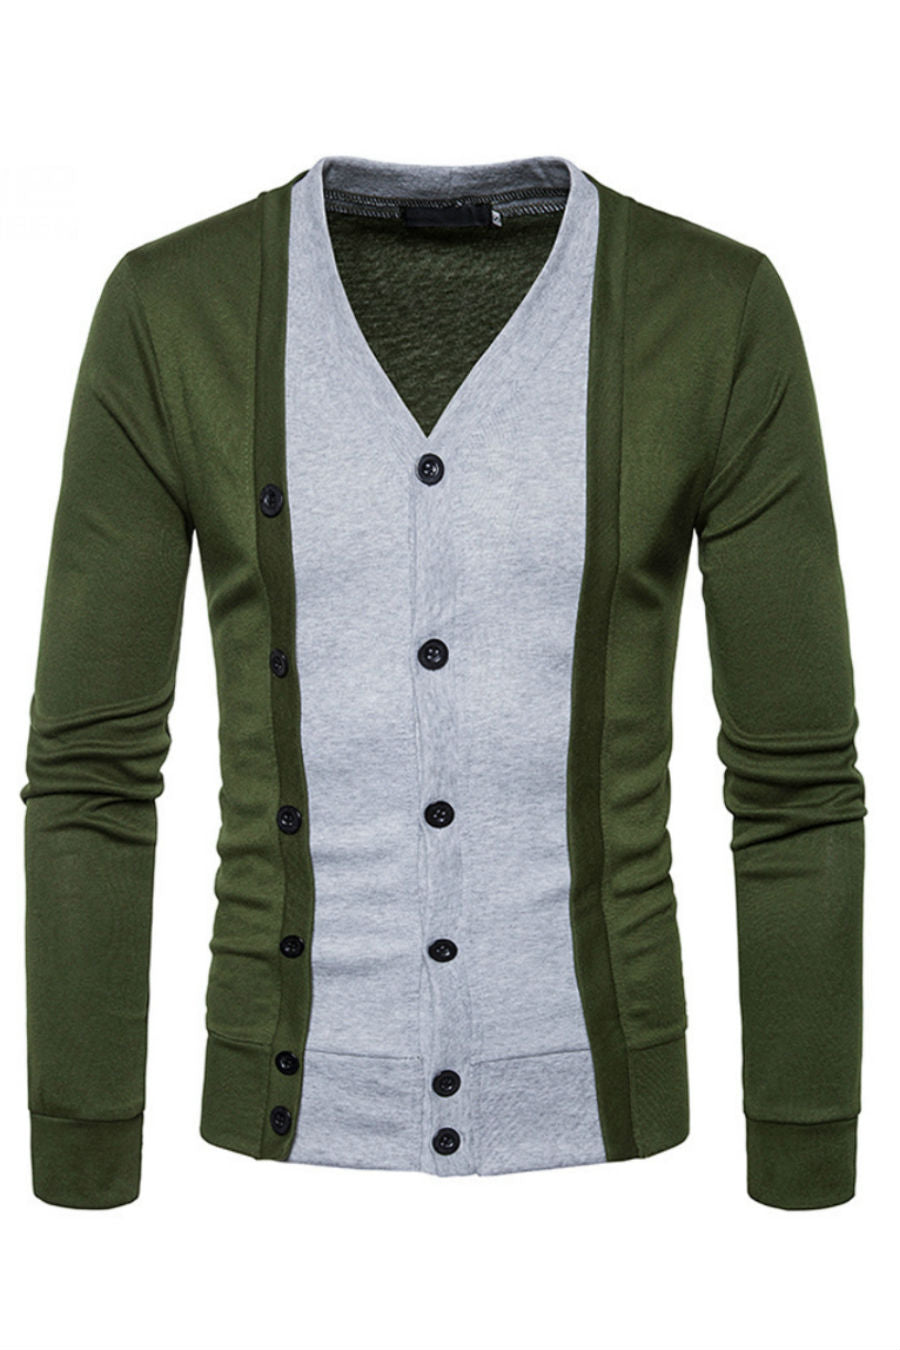 Green Button Up Cardigan